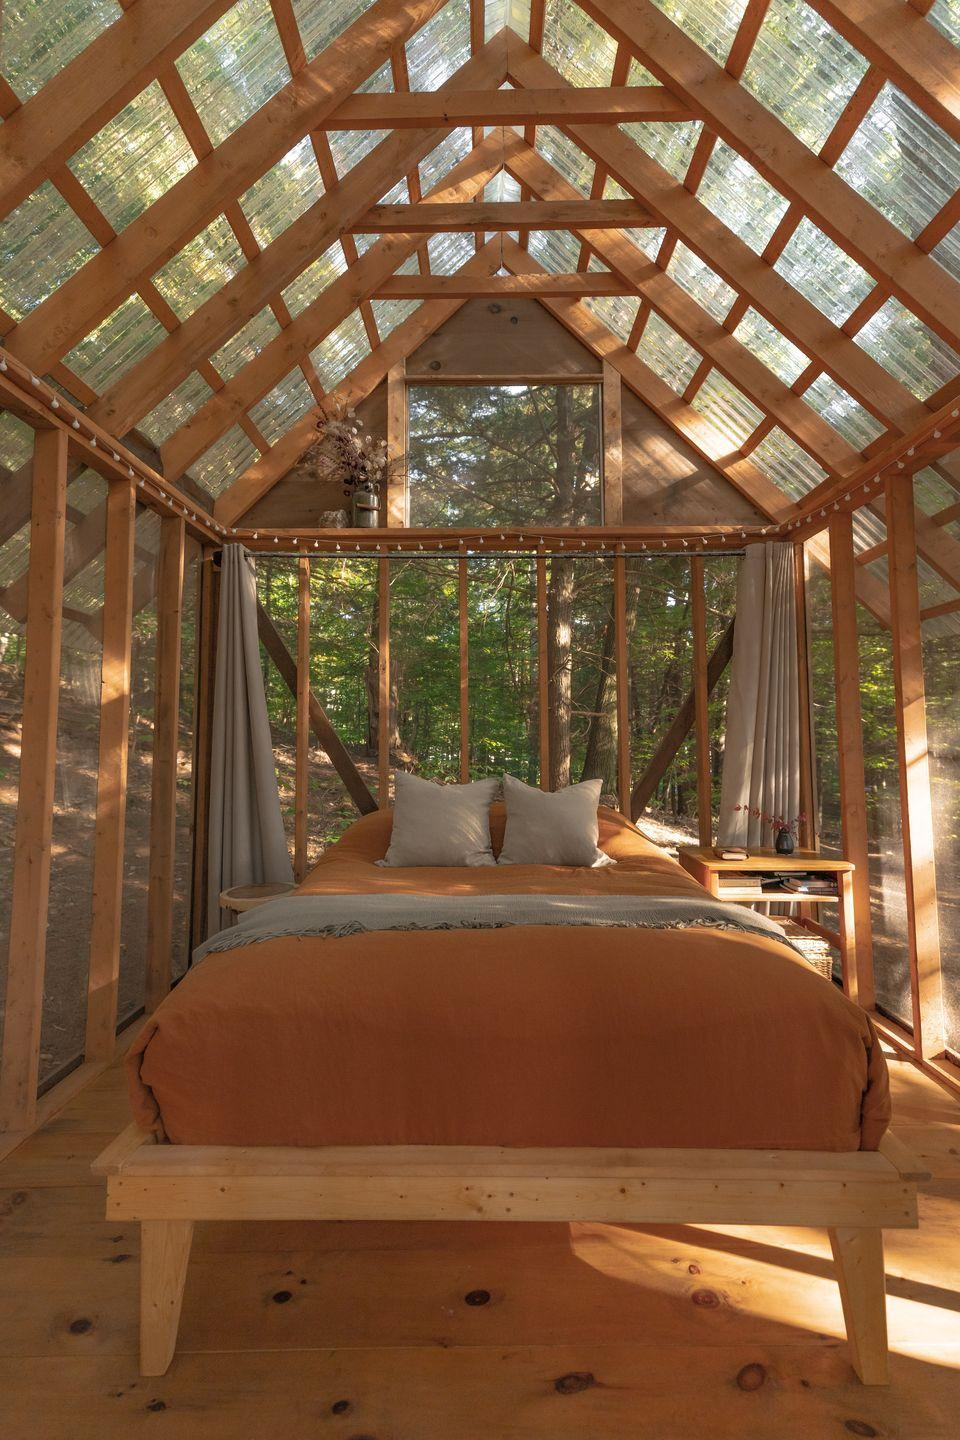 """<p>Tucked away in a forested grove on a flower farm, this glass cabin brings a whole new meaning to the word glamping. From hiking to paddling and rural road biking, it's the perfect escape for those looking for a little adventure. </p><p><a class=""""link rapid-noclick-resp"""" href=""""https://go.redirectingat.com?id=127X1599956&url=https%3A%2F%2Fwww.airbnb.co.uk%2Frooms%2F17072599&sref=https%3A%2F%2Fwww.housebeautiful.com%2Fuk%2Flifestyle%2Fproperty%2Fg35381593%2Fairbnb-most-liked-homes%2F"""" rel=""""nofollow noopener"""" target=""""_blank"""" data-ylk=""""slk:MORE INFO"""">MORE INFO</a></p>"""